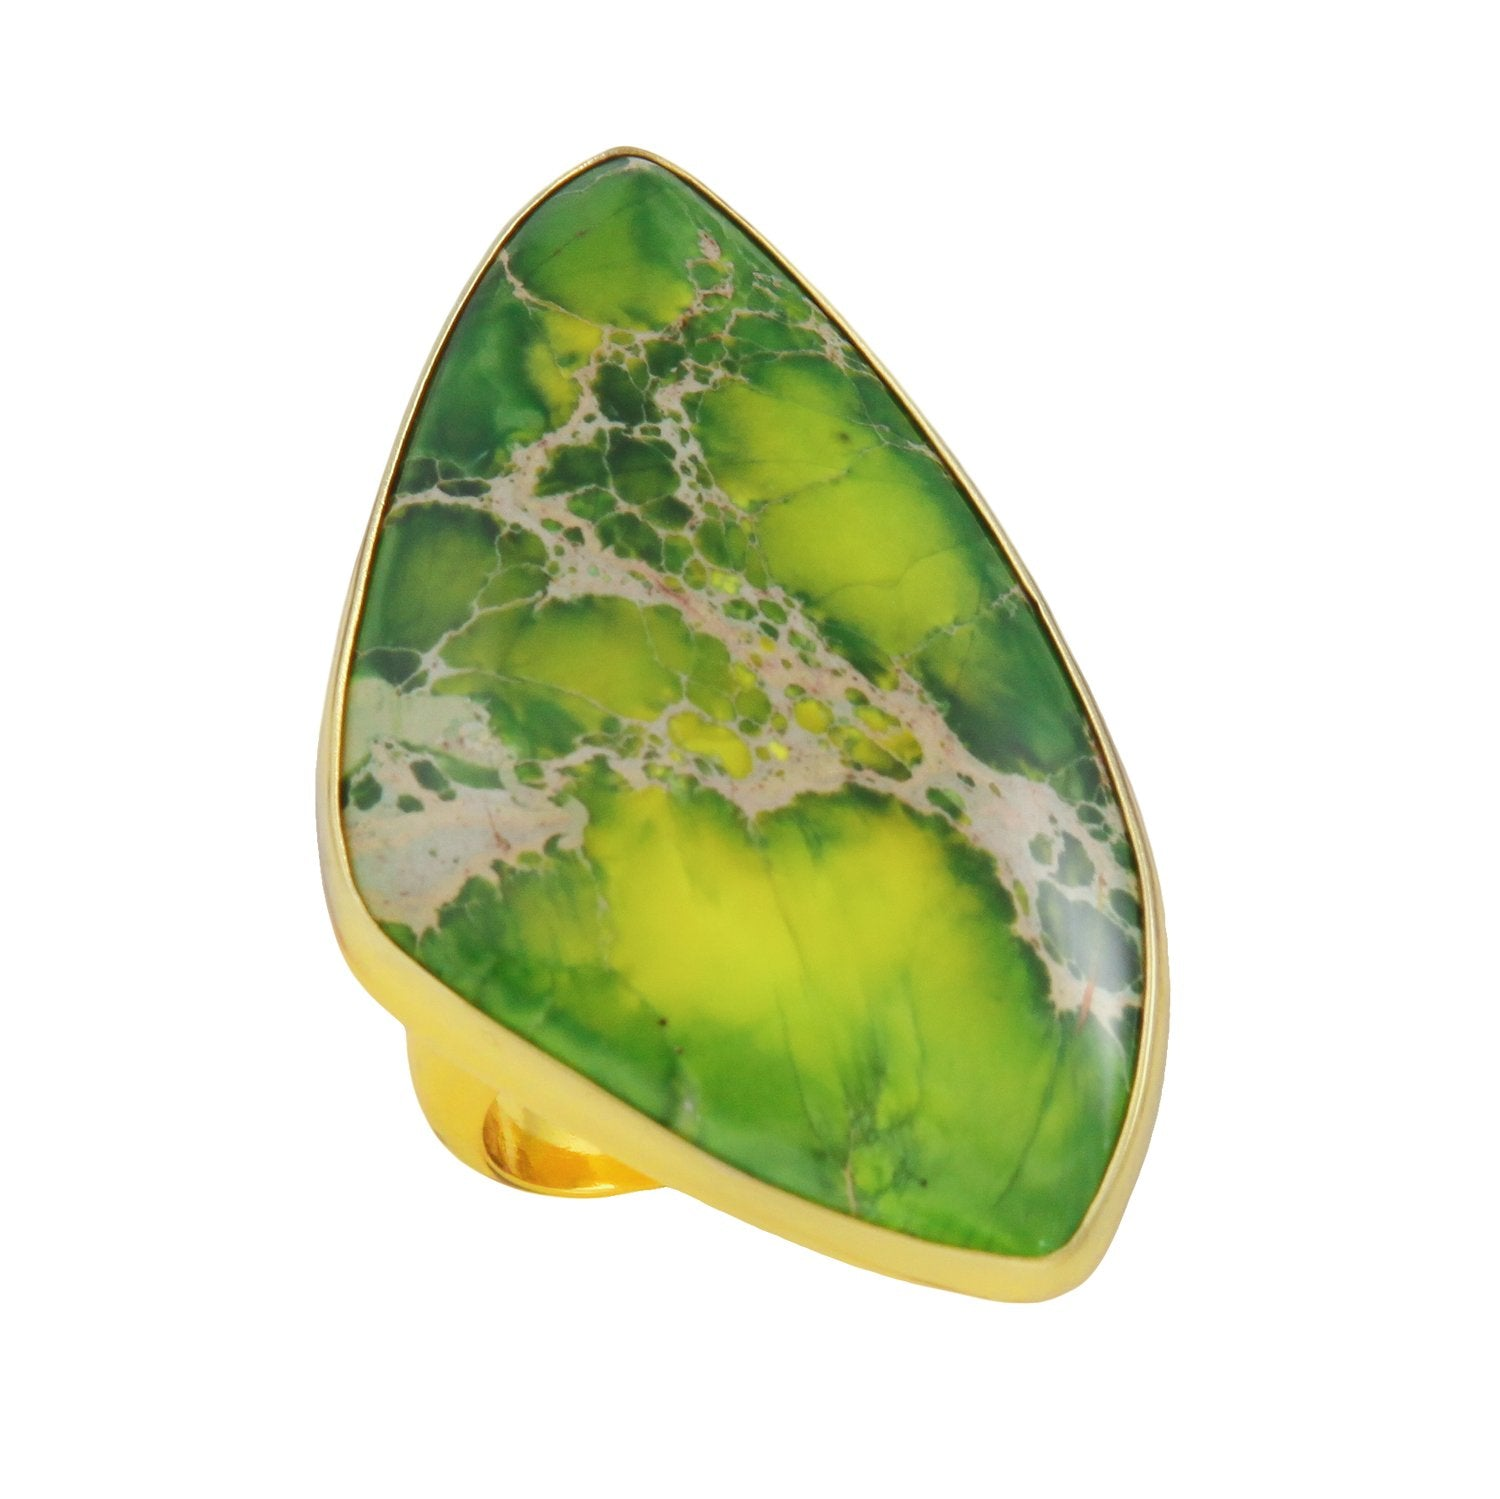 alchemia-green-jasper-ring - 1 - Charles Albert Inc